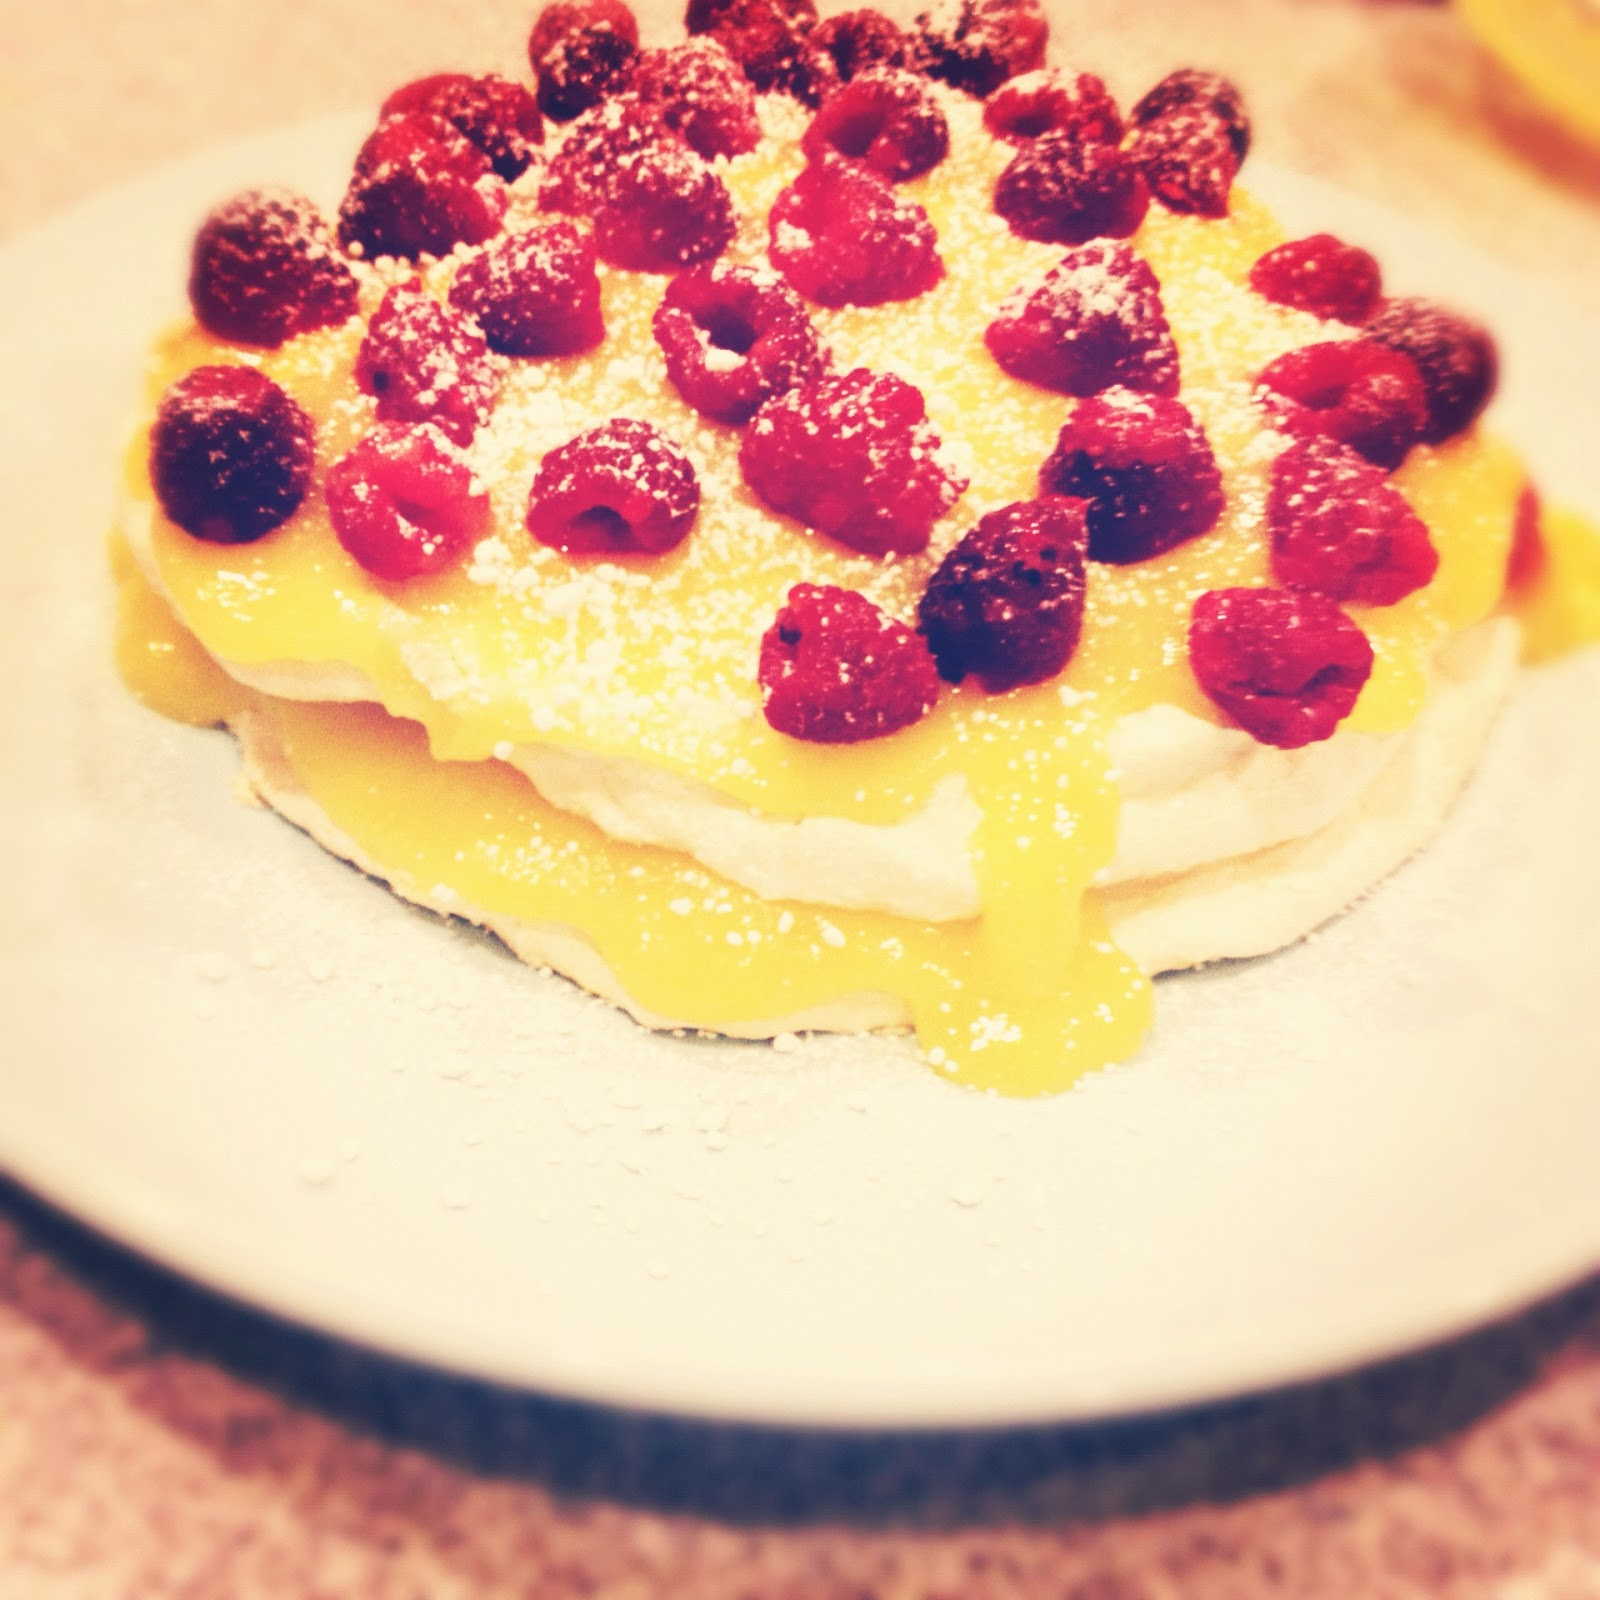 ... Delicious Gluten-free & Dairy-free Raspberry-Lemon Meringue Layer Cake